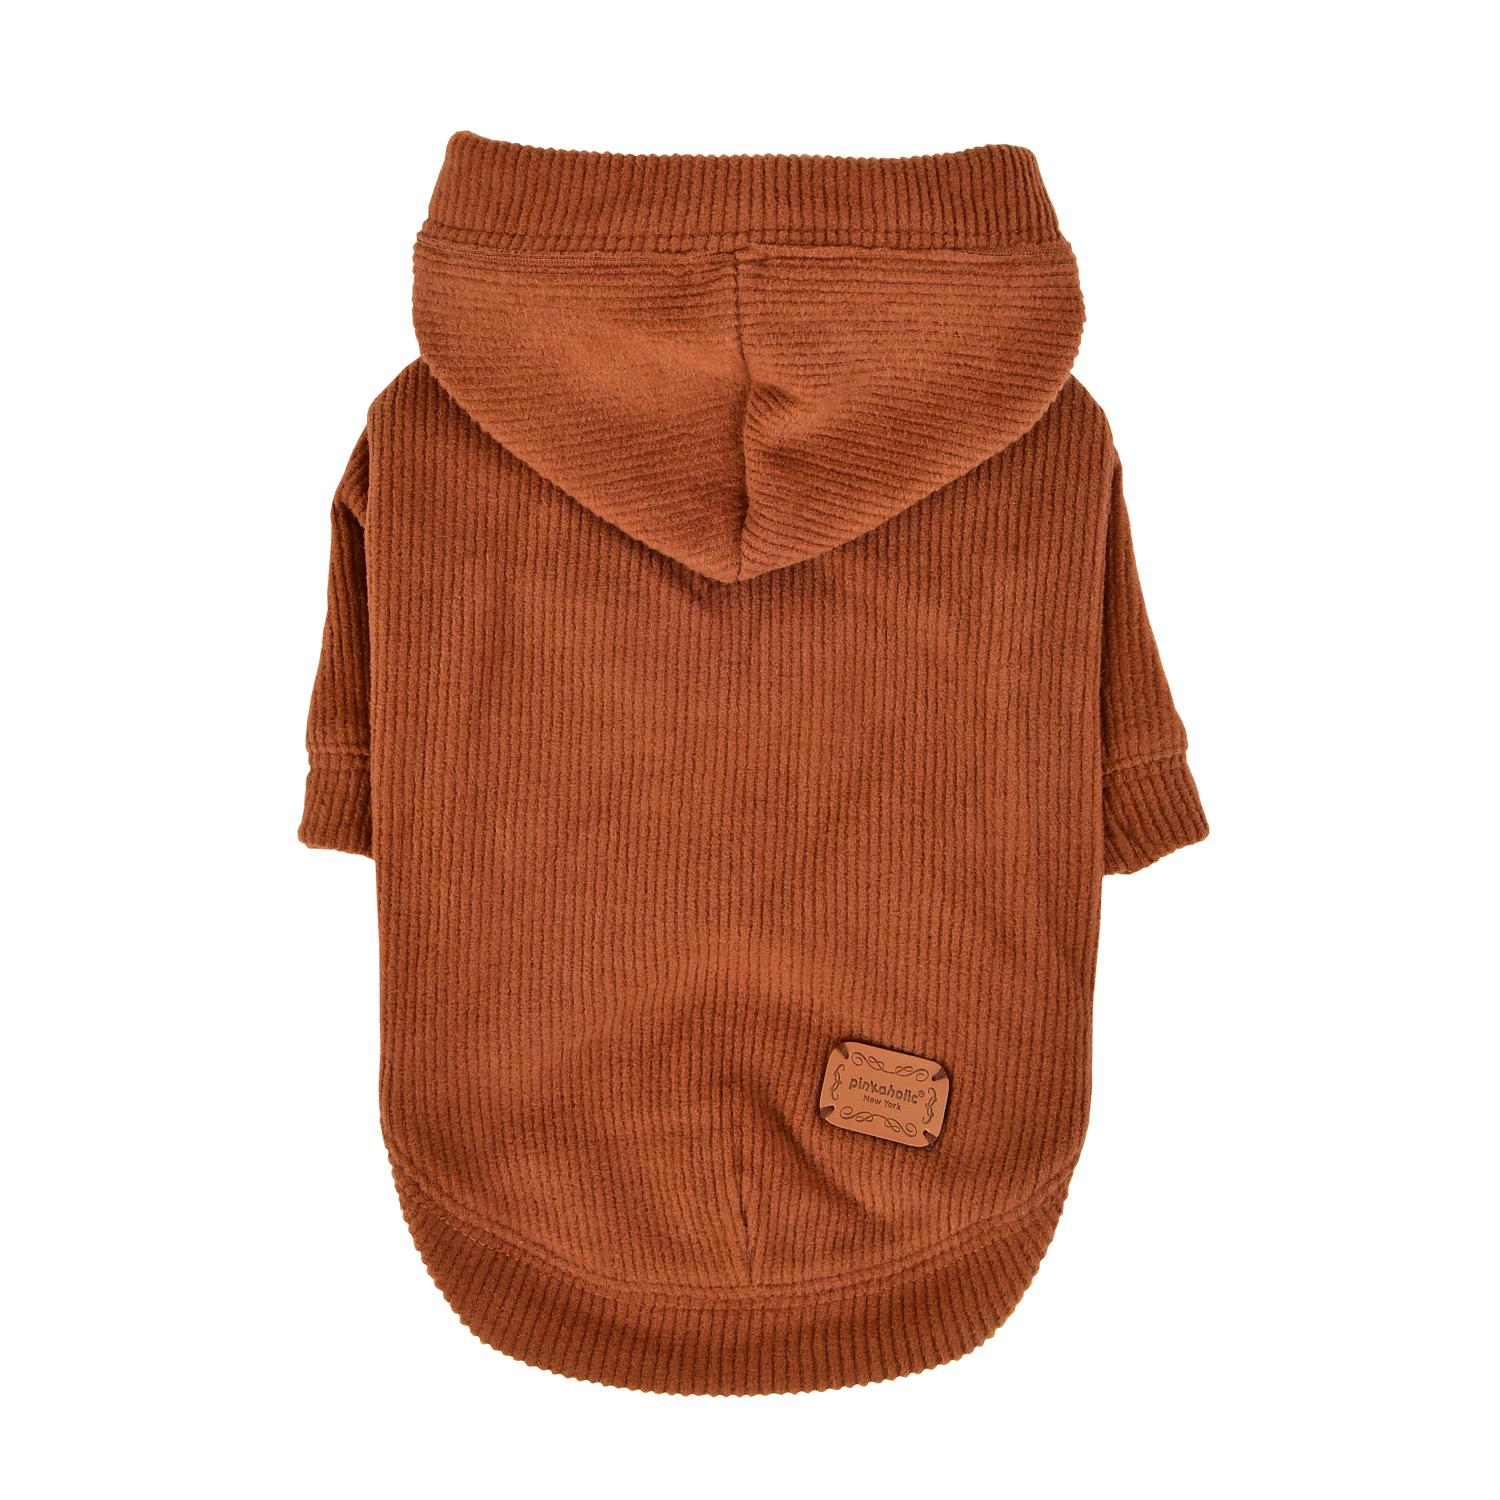 Pippa Dog Hoodie by Pinkaholic - Camel